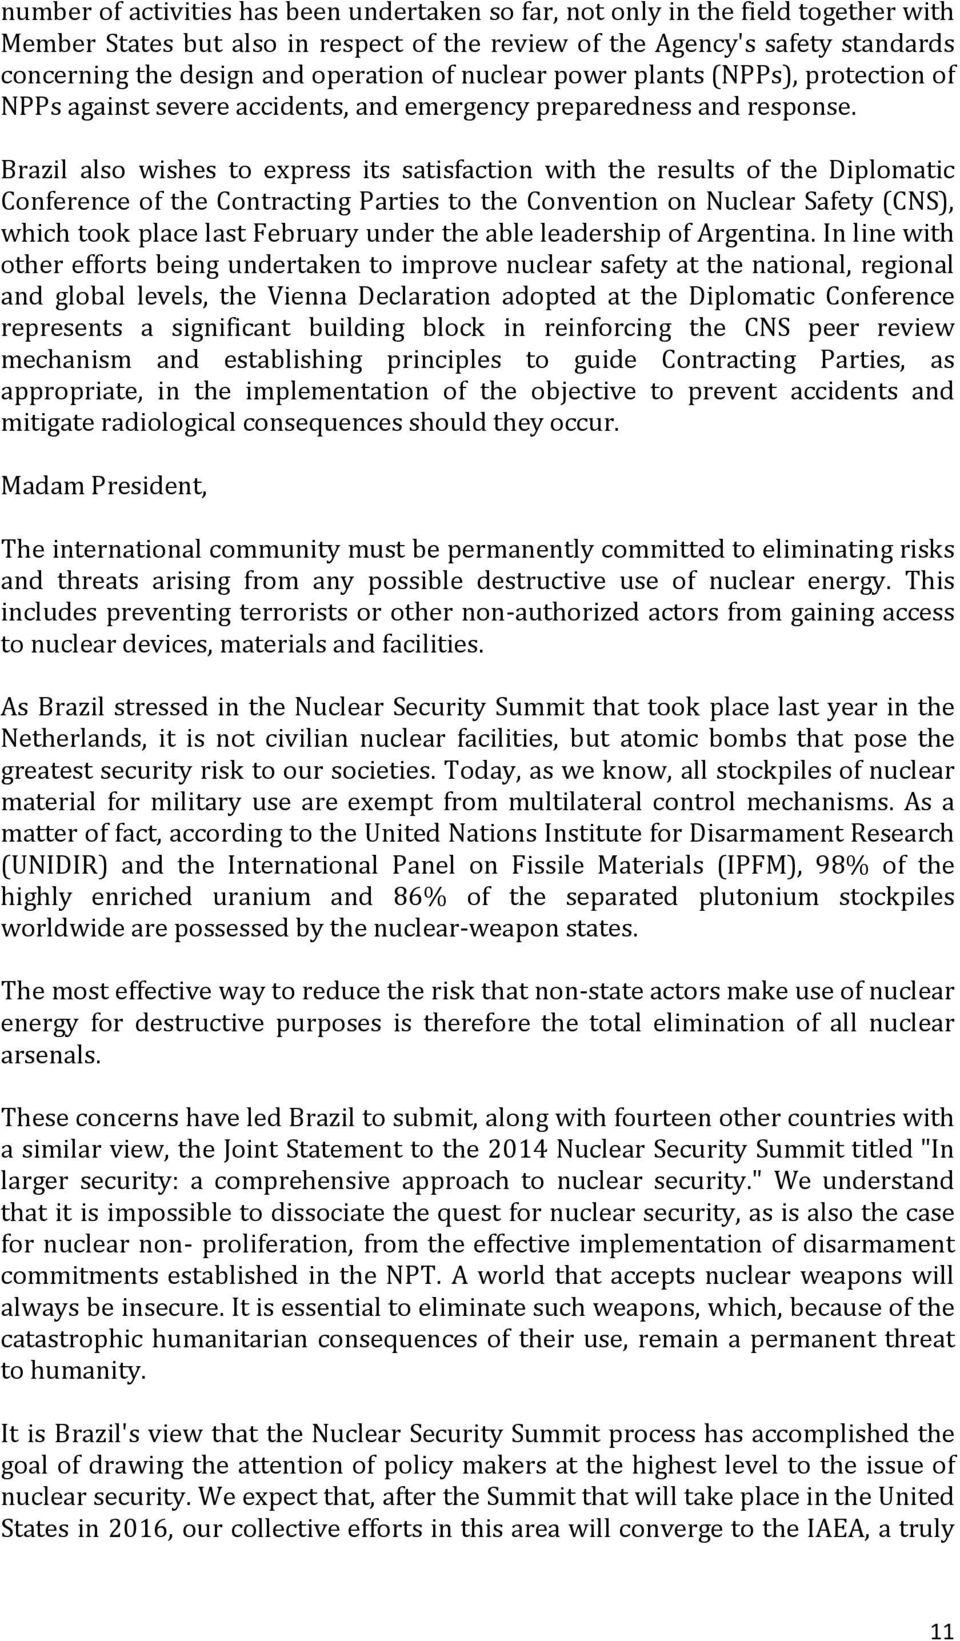 Brazil also wishes to express its satisfaction with the results of the Diplomatic Conference of the Contracting Parties to the Convention on Nuclear Safety (CNS), which took place last February under